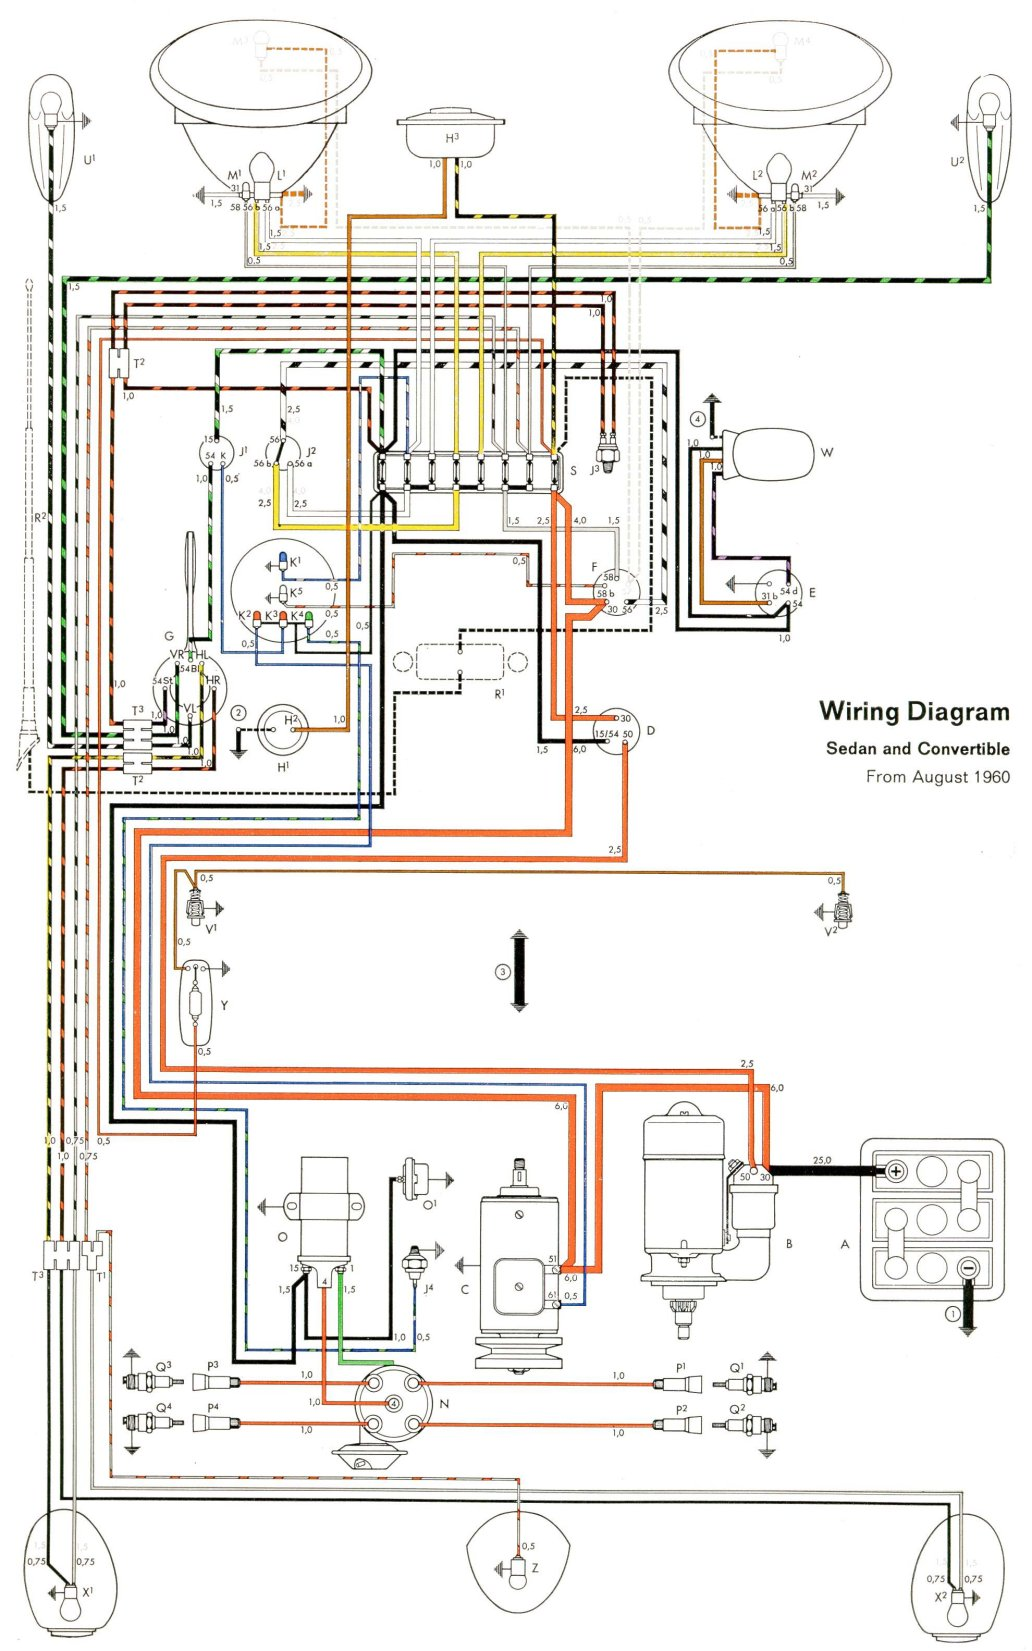 1960 Vw Bug Wiring - Wiring Diagram Dash Vw Type Wiring Diagram on jaguar s type wiring diagram, vw type 1 maintenance, vw type 1 suspension, vw type 1 fuel pump, vw type 1 fuel gauge, vw type 1 exhaust, vw type 1 air conditioning, vw type 1 generator, vw type 1 fan belt, vw type 1 dimensions, vw type 1 body, vw type 1 flywheel, vw type 1 starter, vw type 1 brakes, vw type 1 wheels, vw type 1 frame, volkswagen type 3 wiring diagram, vw type 1 torque specs,